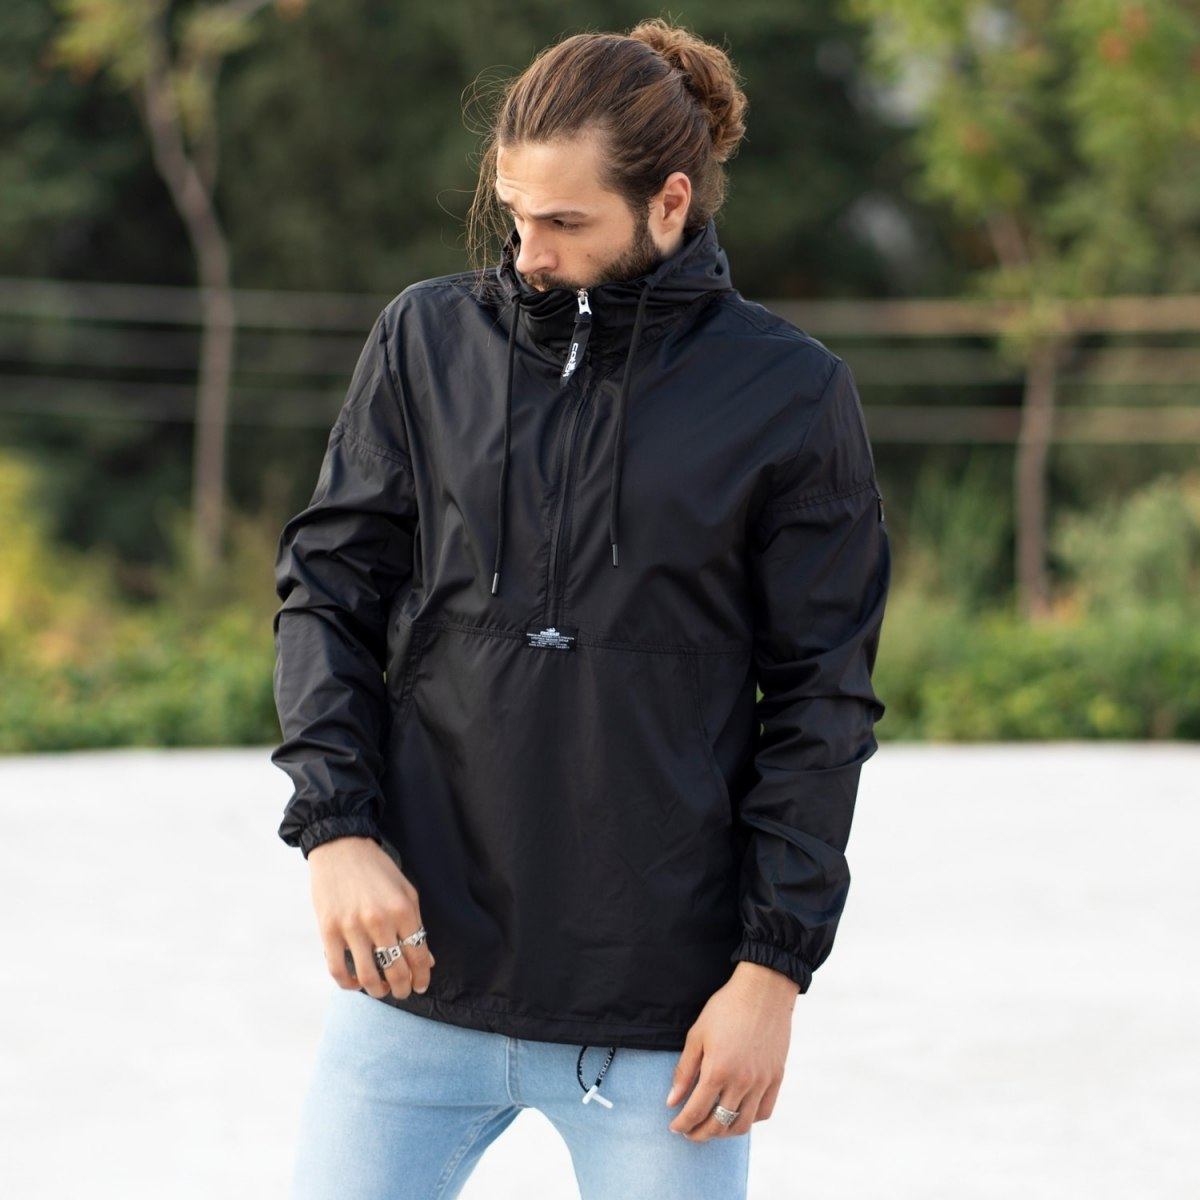 MV Autumn Collection Rainproof Hoodie in Black